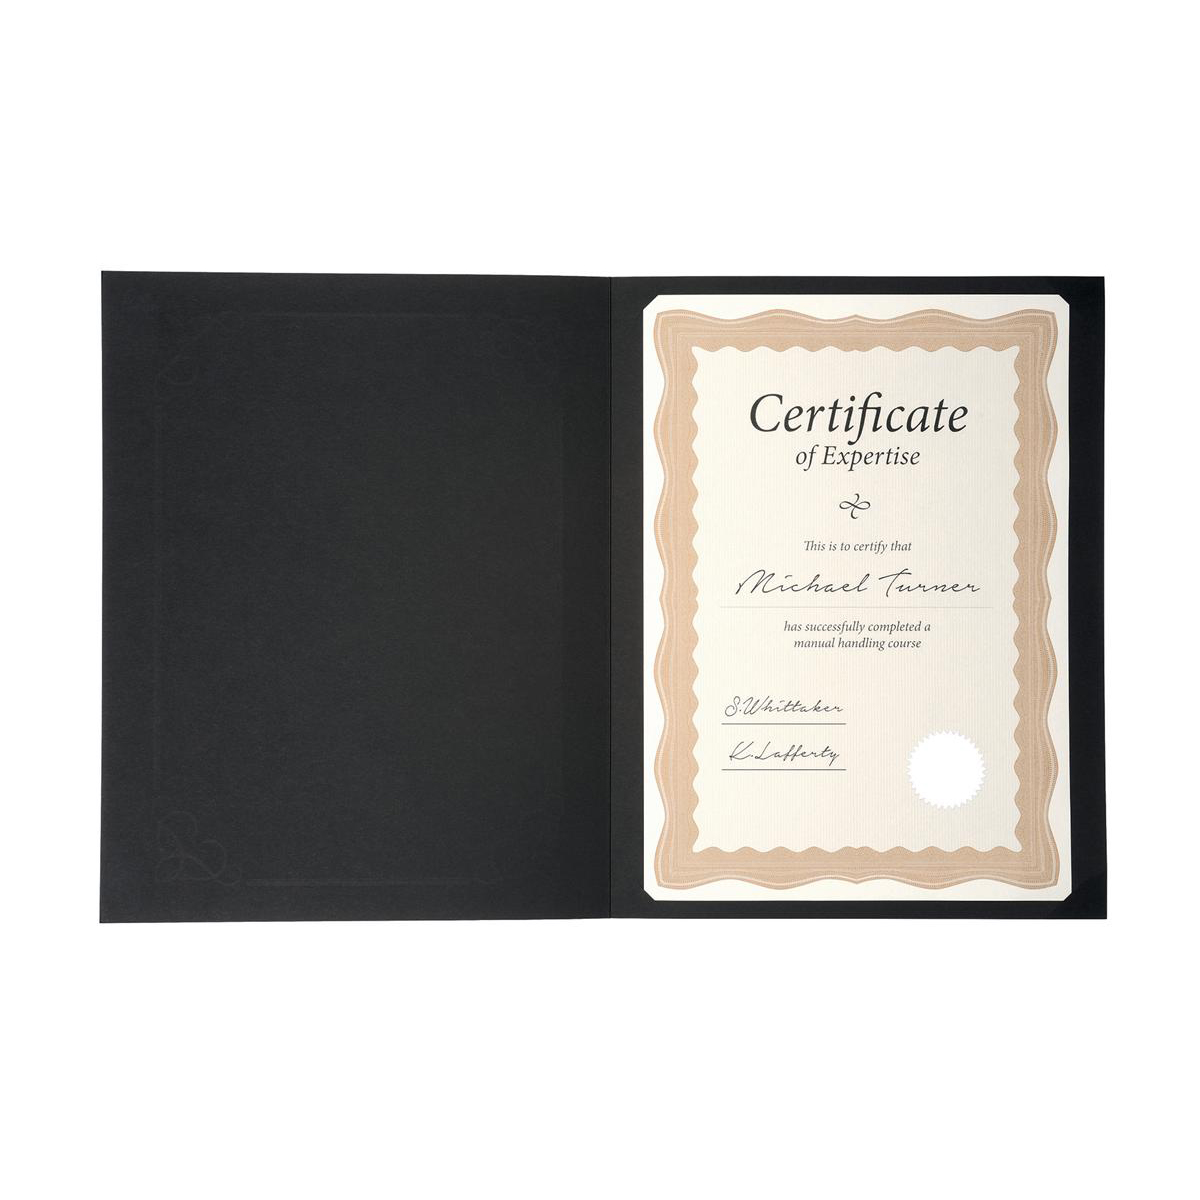 Certificate Paper & Covers Certificate Covers Linen Finish Heavyweight Card 240g A4 Black Pack 5